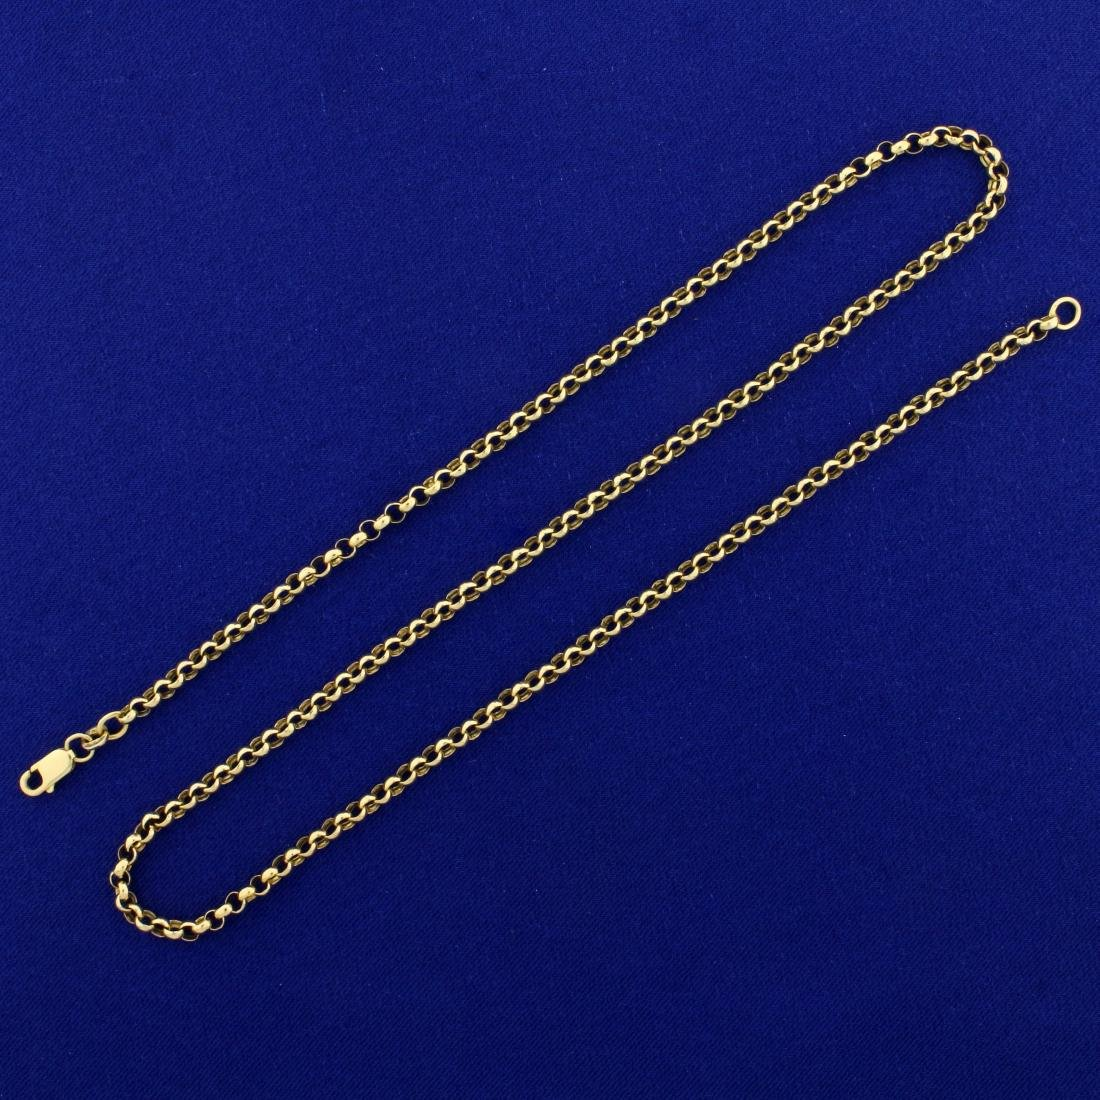 Italian Made 20 Inch Rolo Neck Chain in 14K Yellow Gold